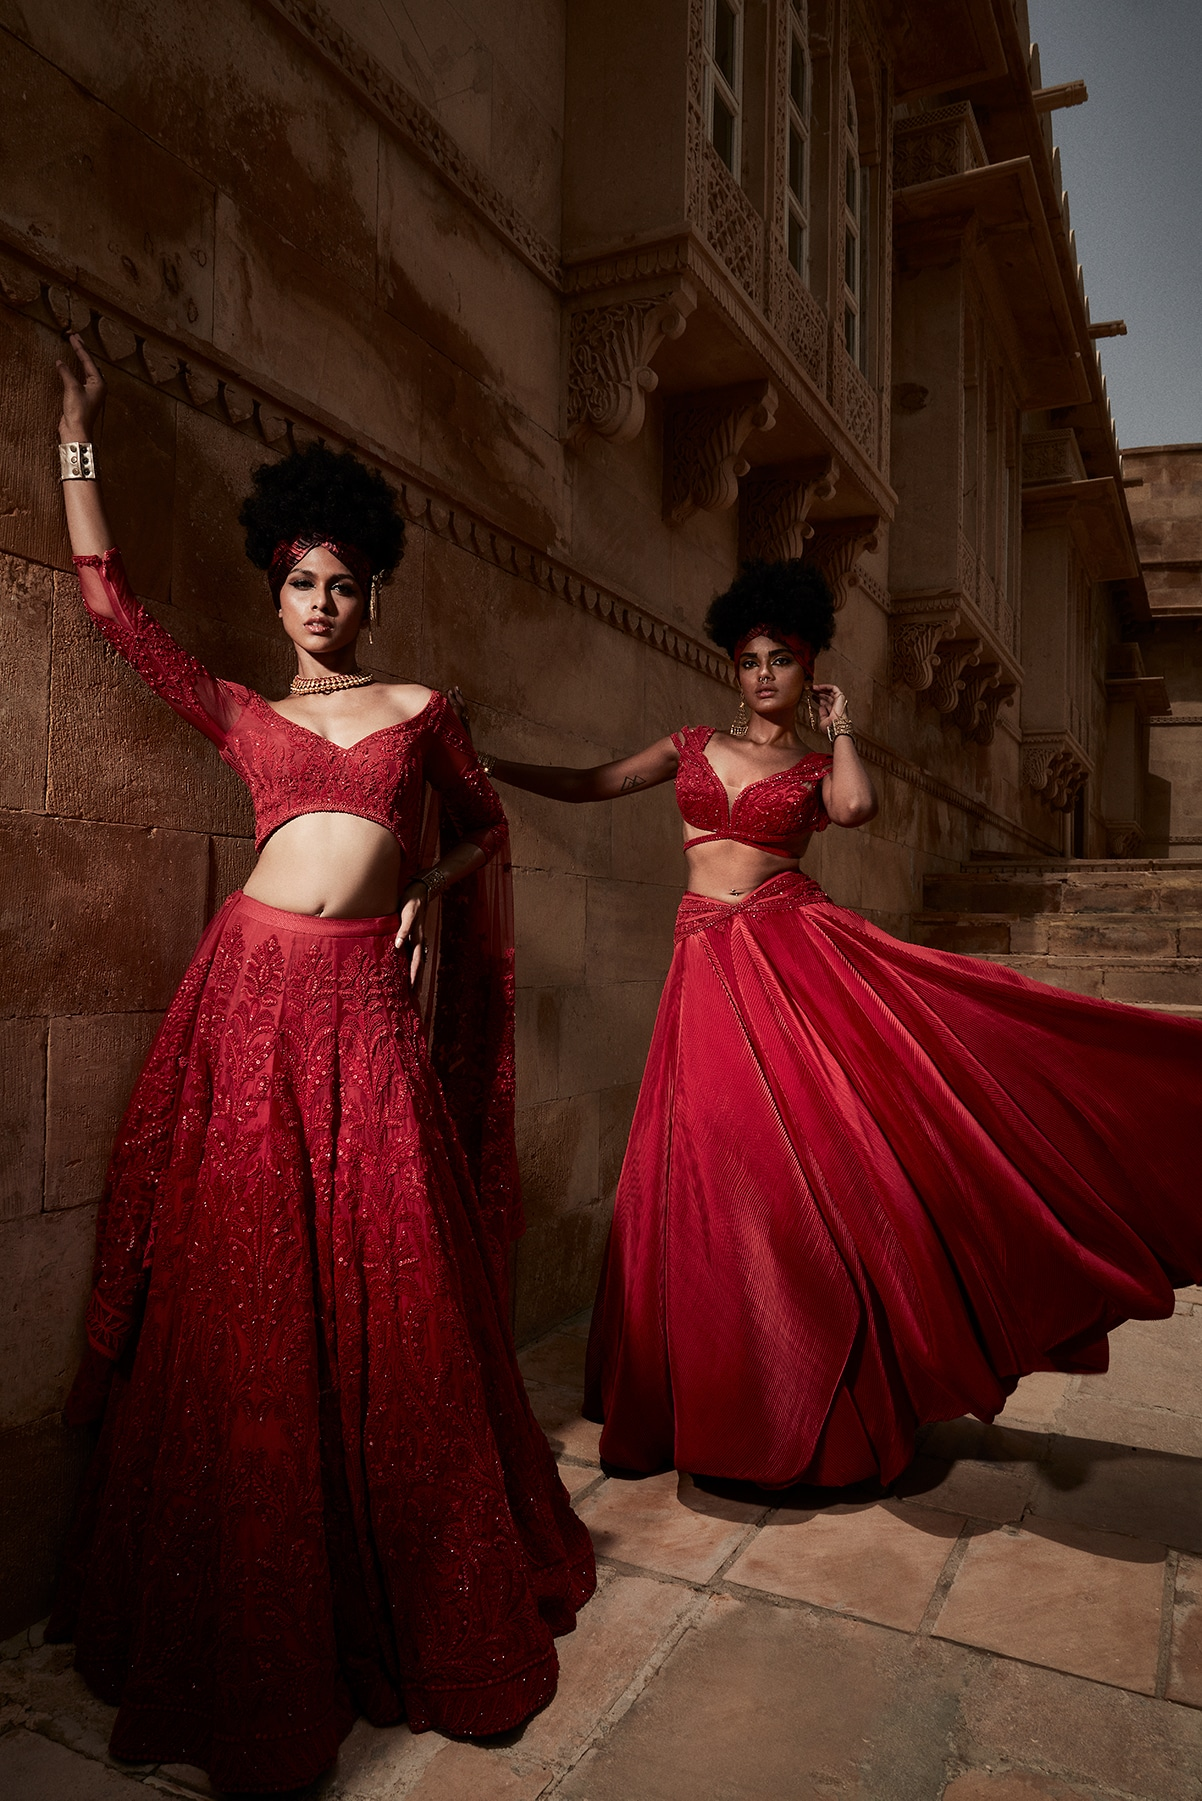 Models in ball gown inspired lehengas, peppered with crystal embroidery